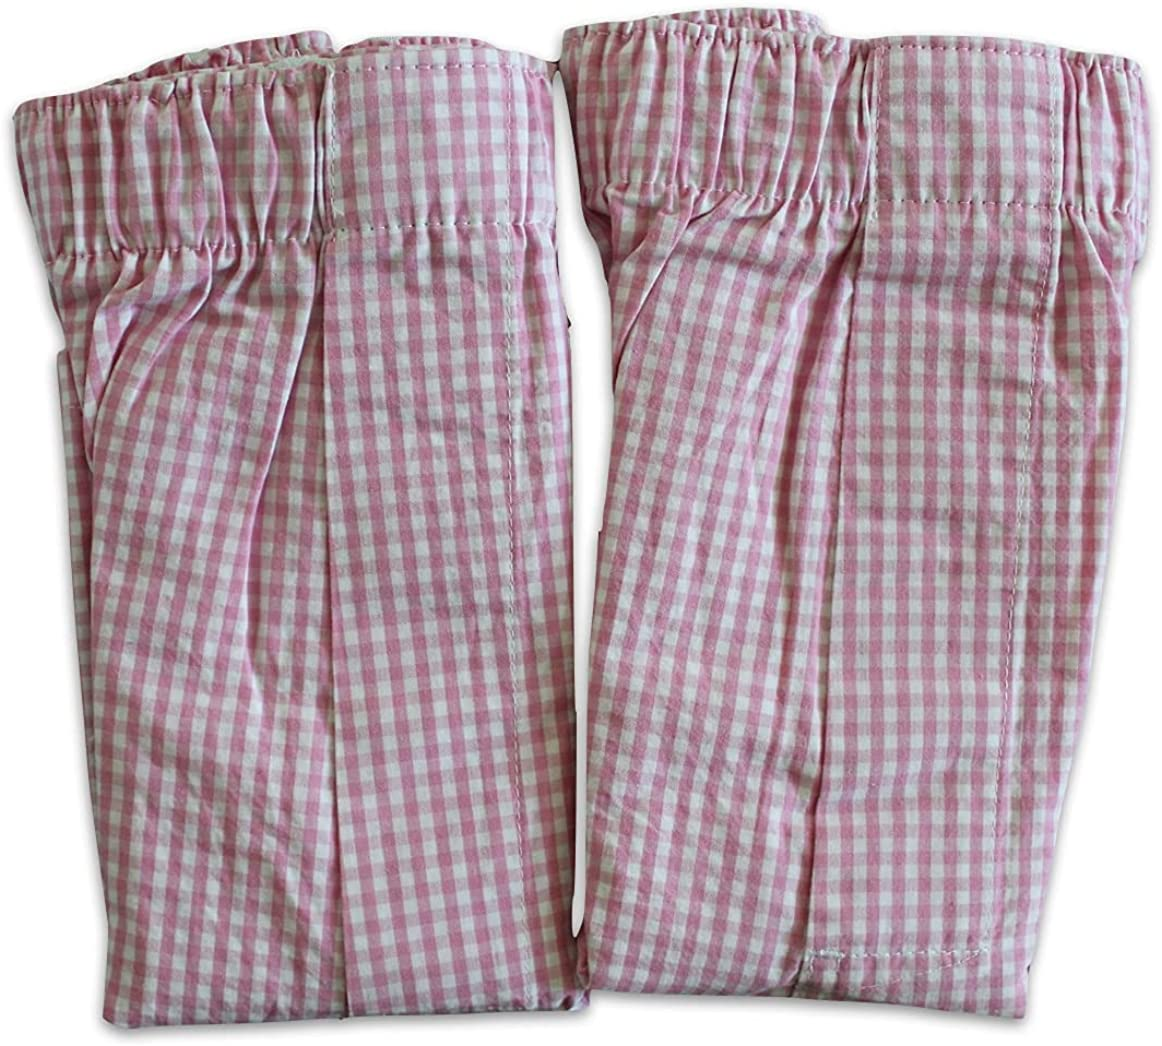 J. Excellence Crew 2-Pair Men's Woven Boxer Shorts Small Sm. S Box Mens Direct stock discount